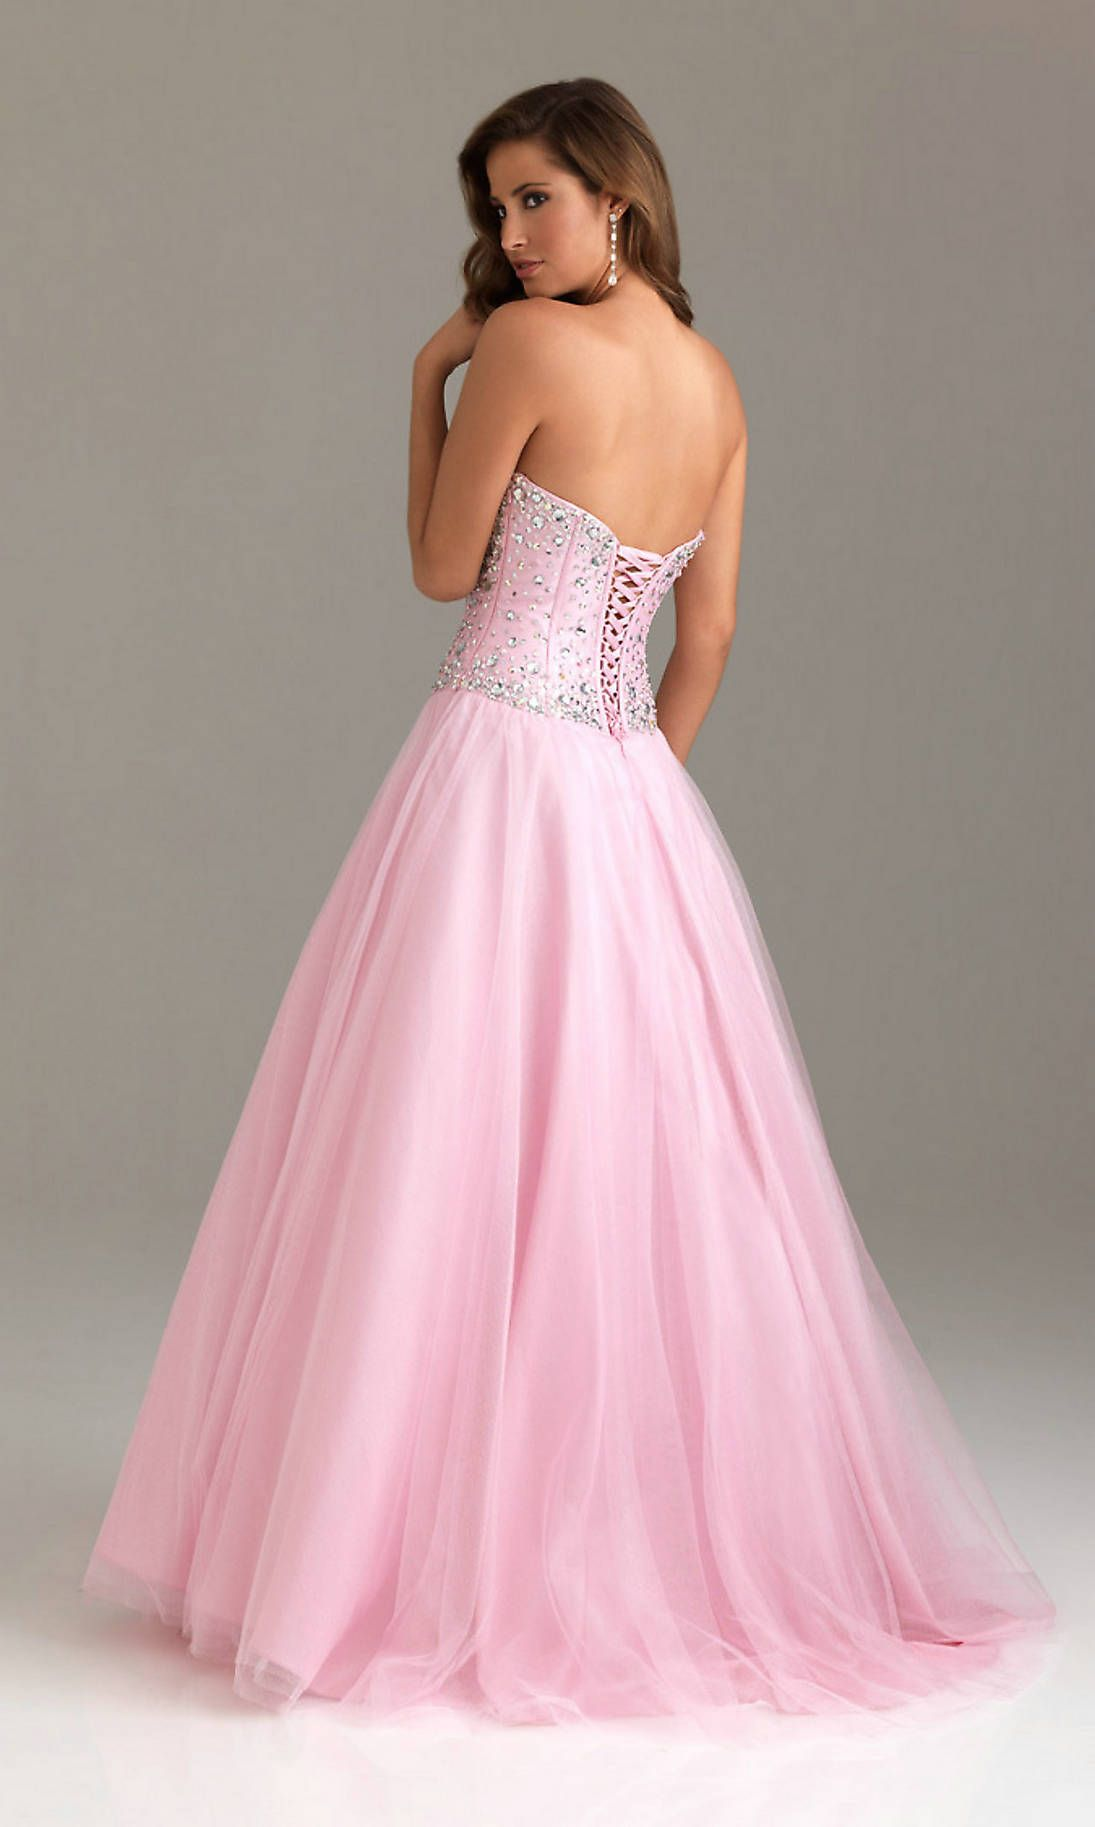 pink-prom-dress- - Pink Prom Dress - Pinterest - Prom dresses ...